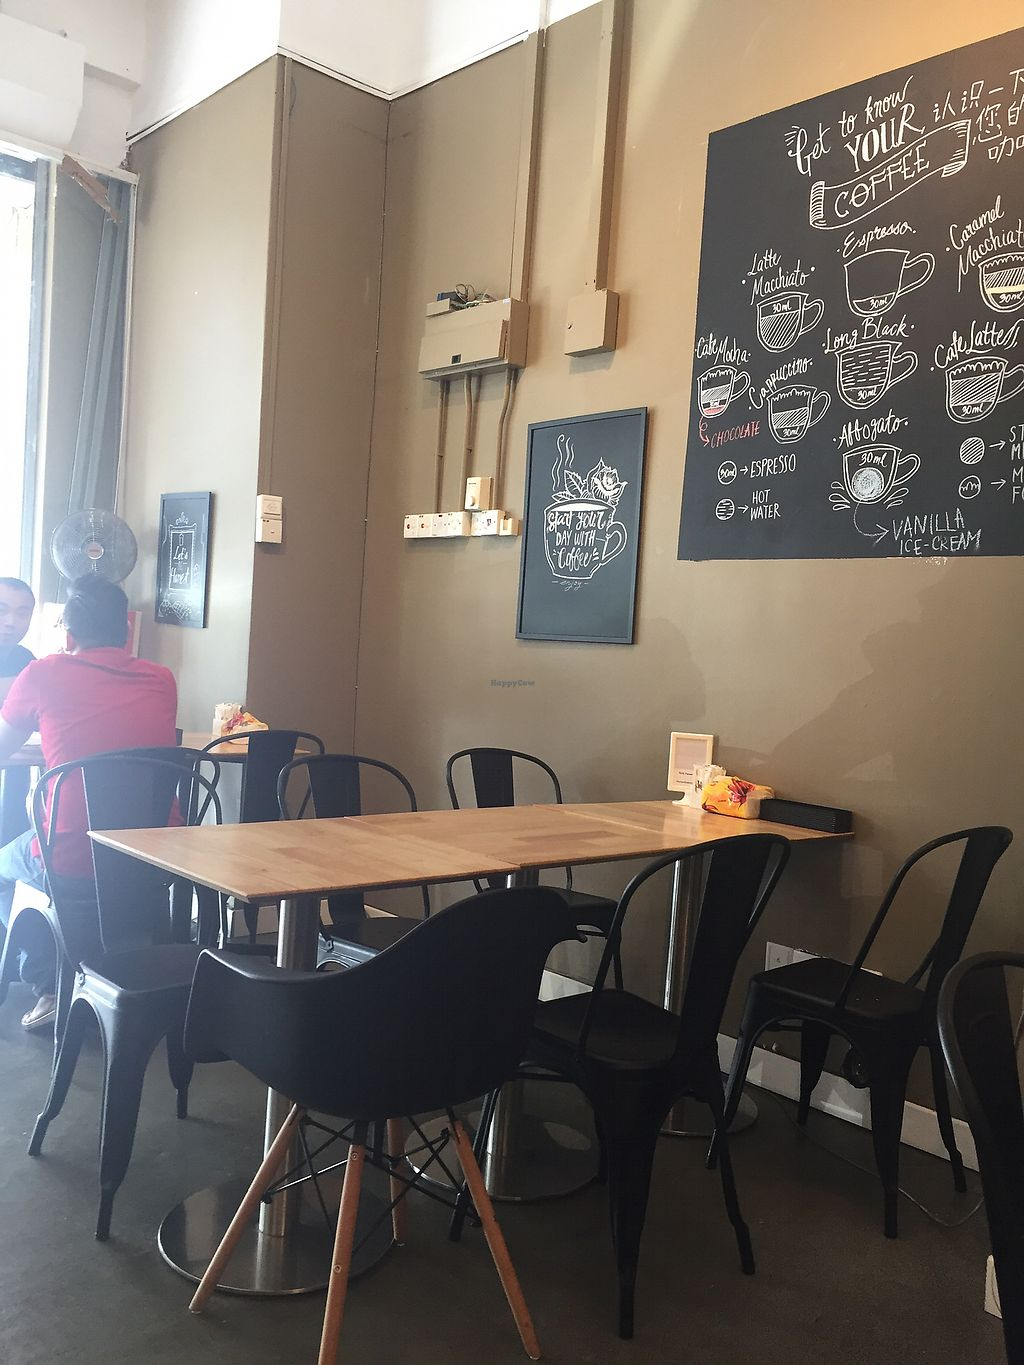 """Photo of Honesty Bakery & Cafe  by <a href=""""/members/profile/ChiamLongThiam"""">ChiamLongThiam</a> <br/>Shop view <br/> November 8, 2017  - <a href='/contact/abuse/image/104495/323146'>Report</a>"""